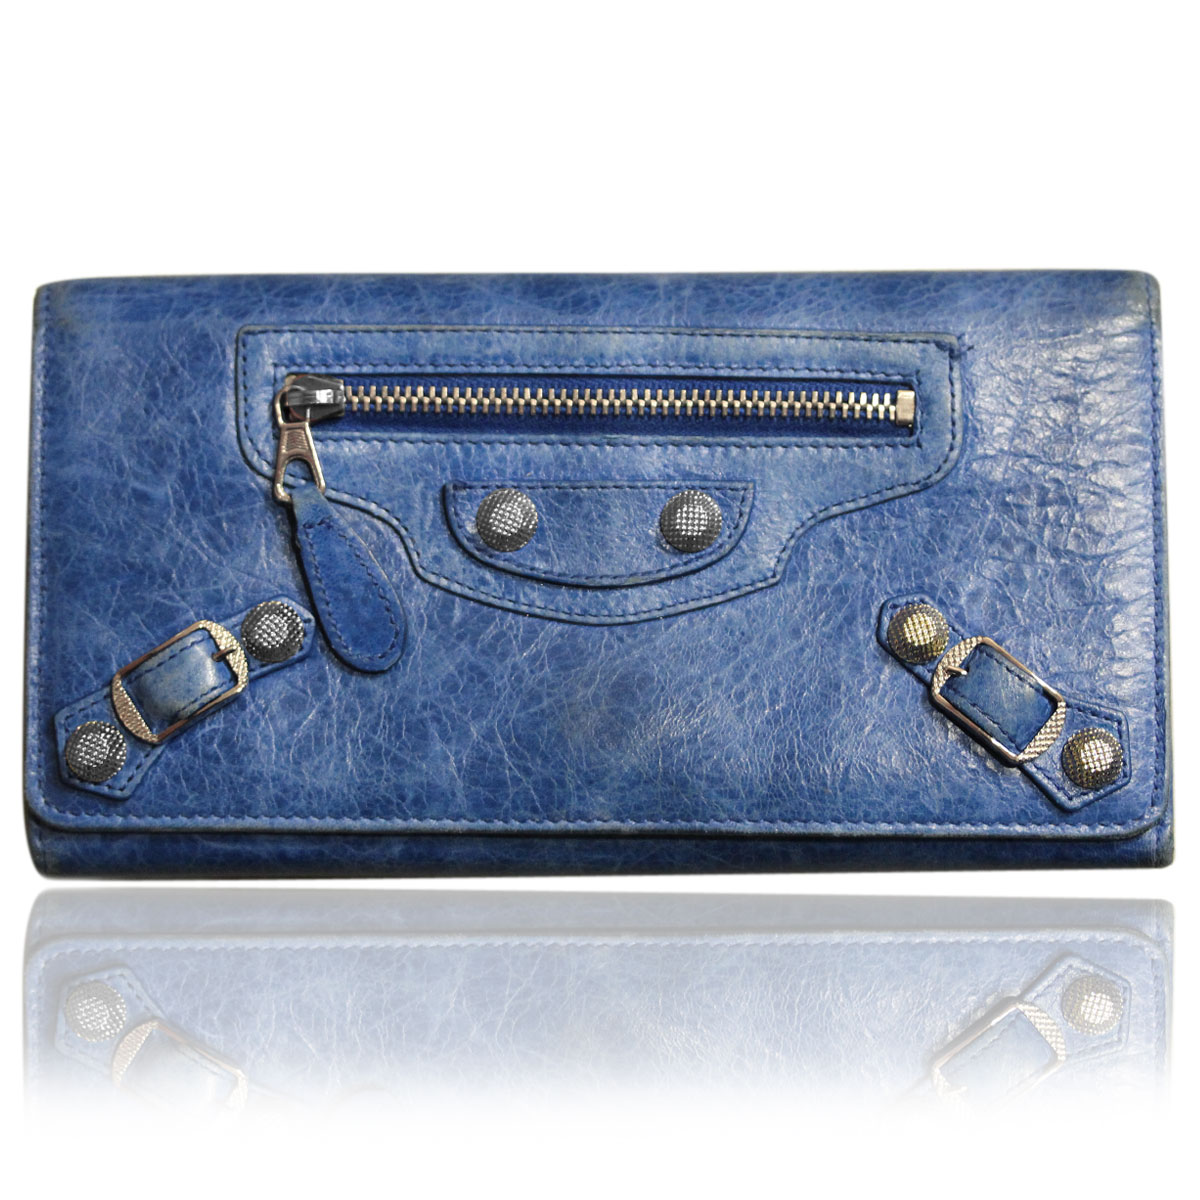 Balenciaga Blue Leather Long Studded Wallet